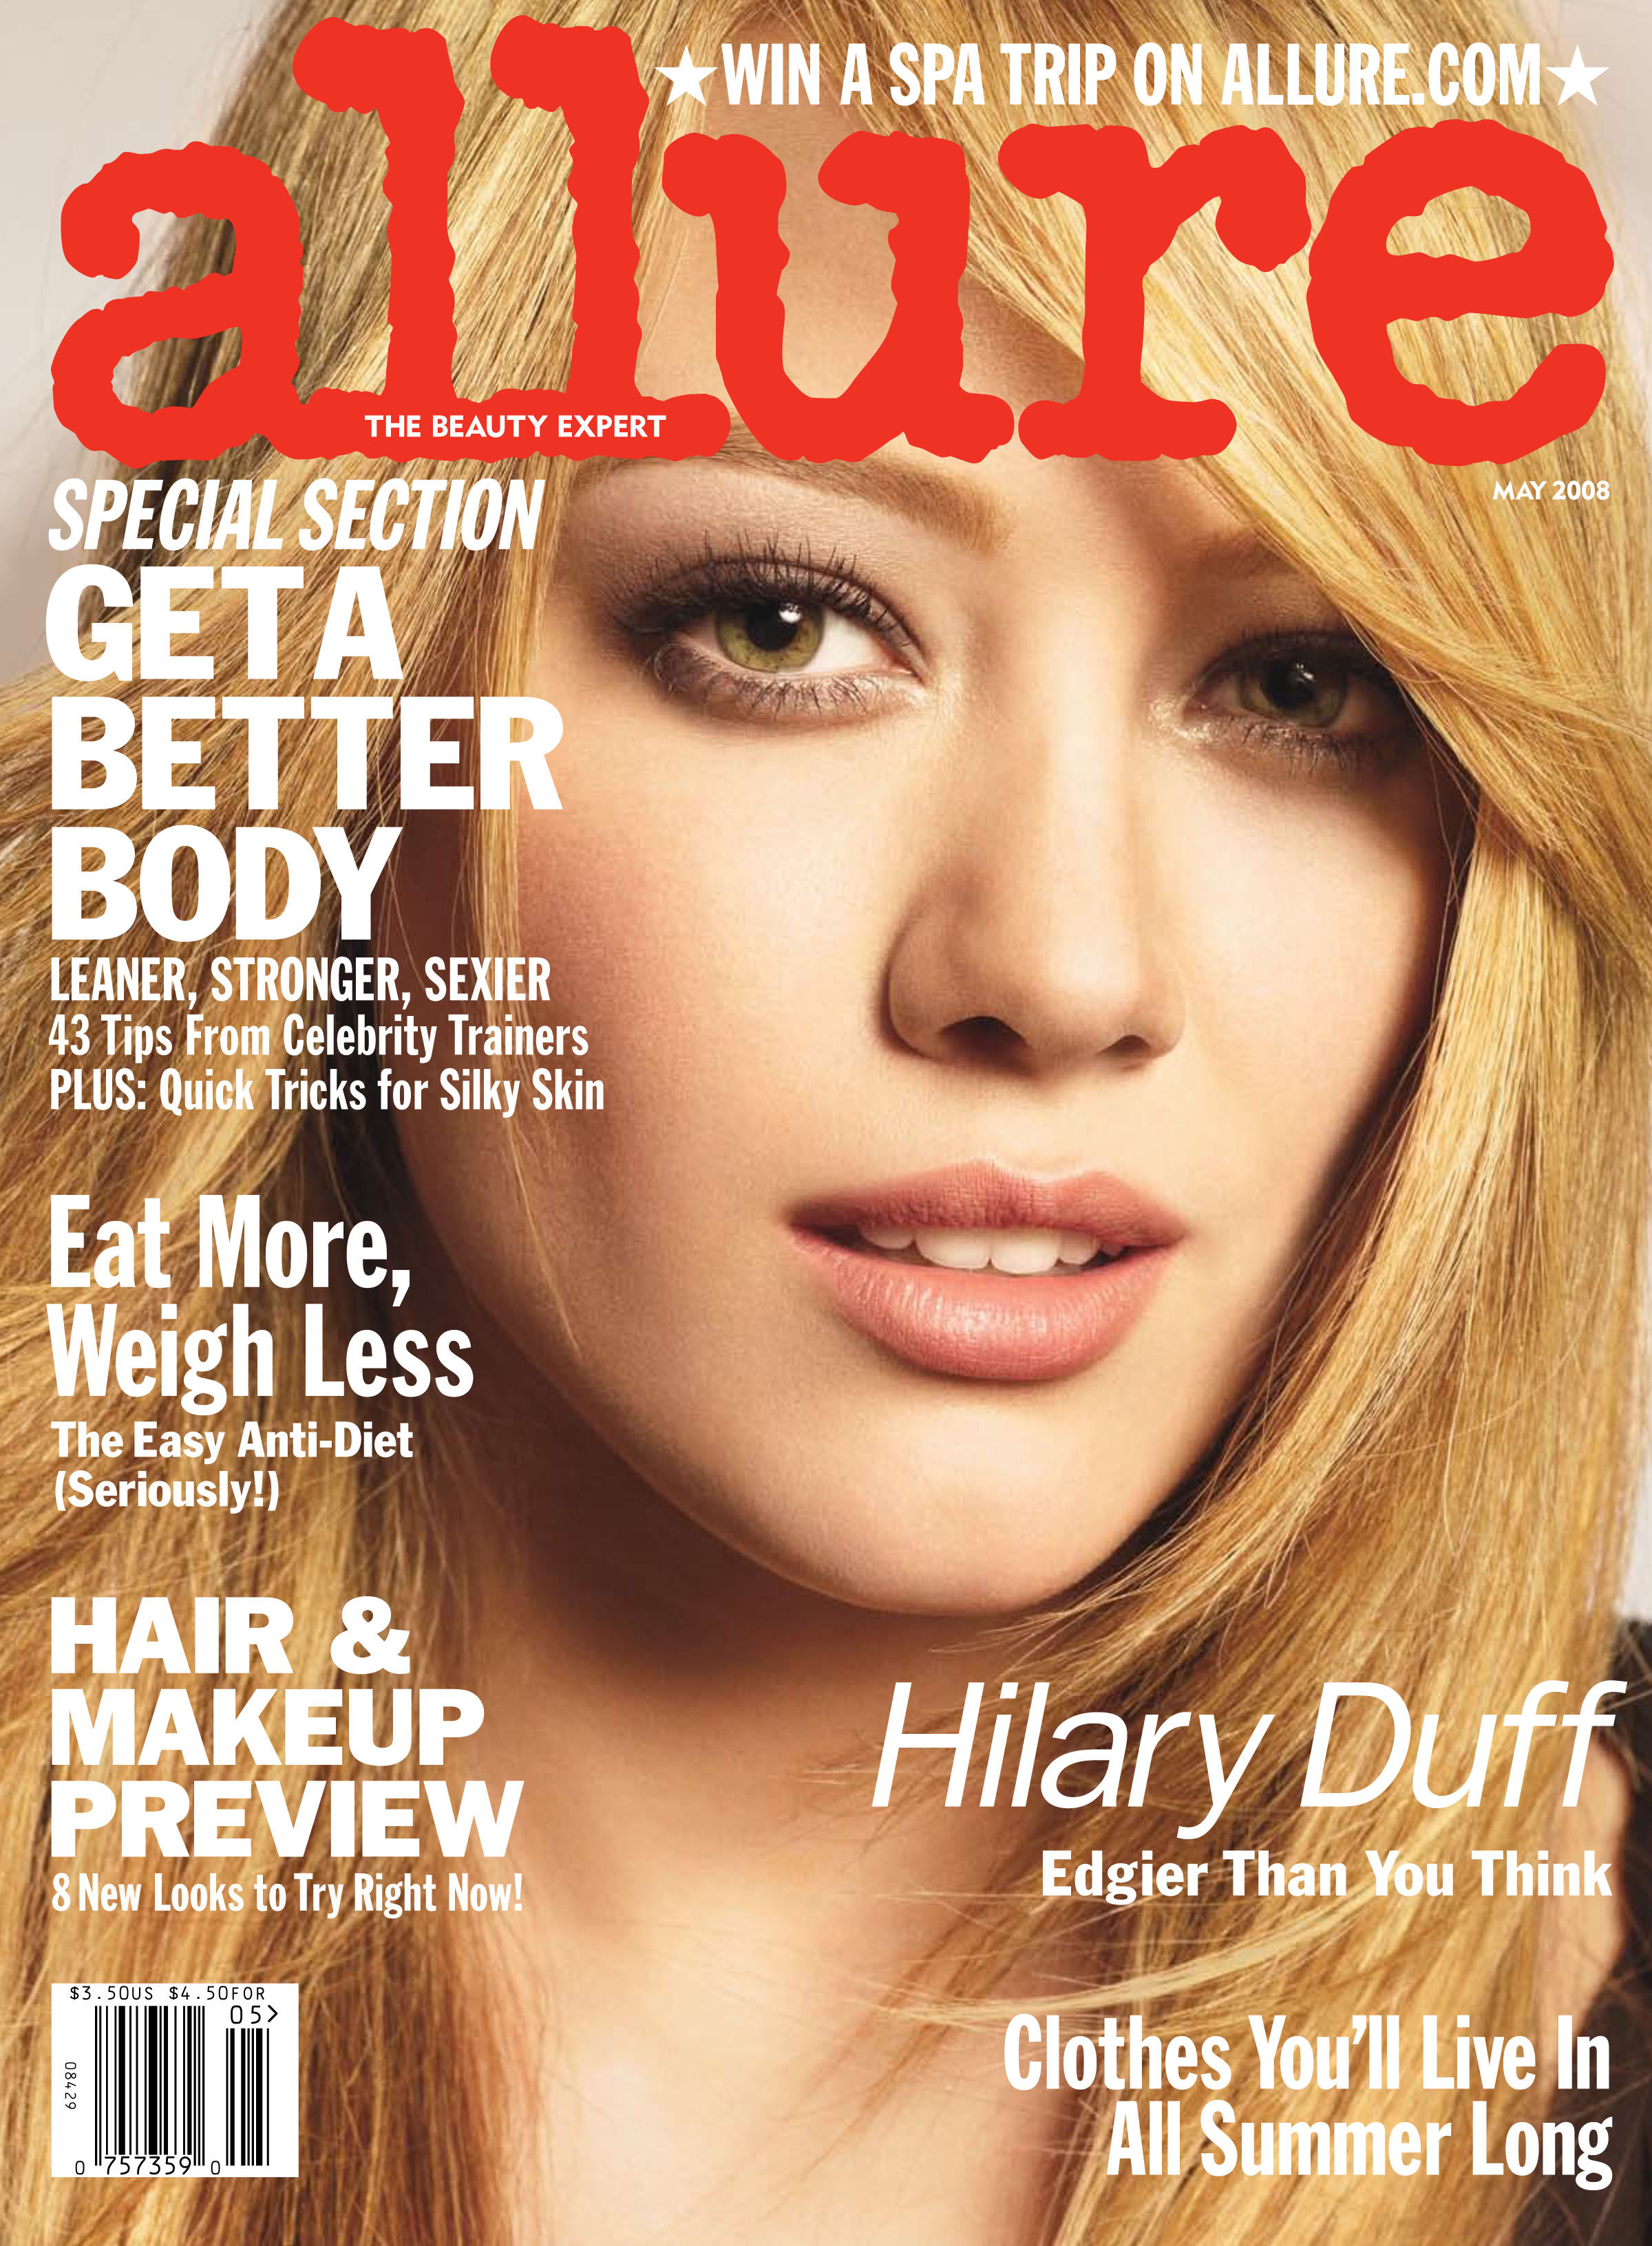 Hilary Duff Perfecting Her Plan for Perfection